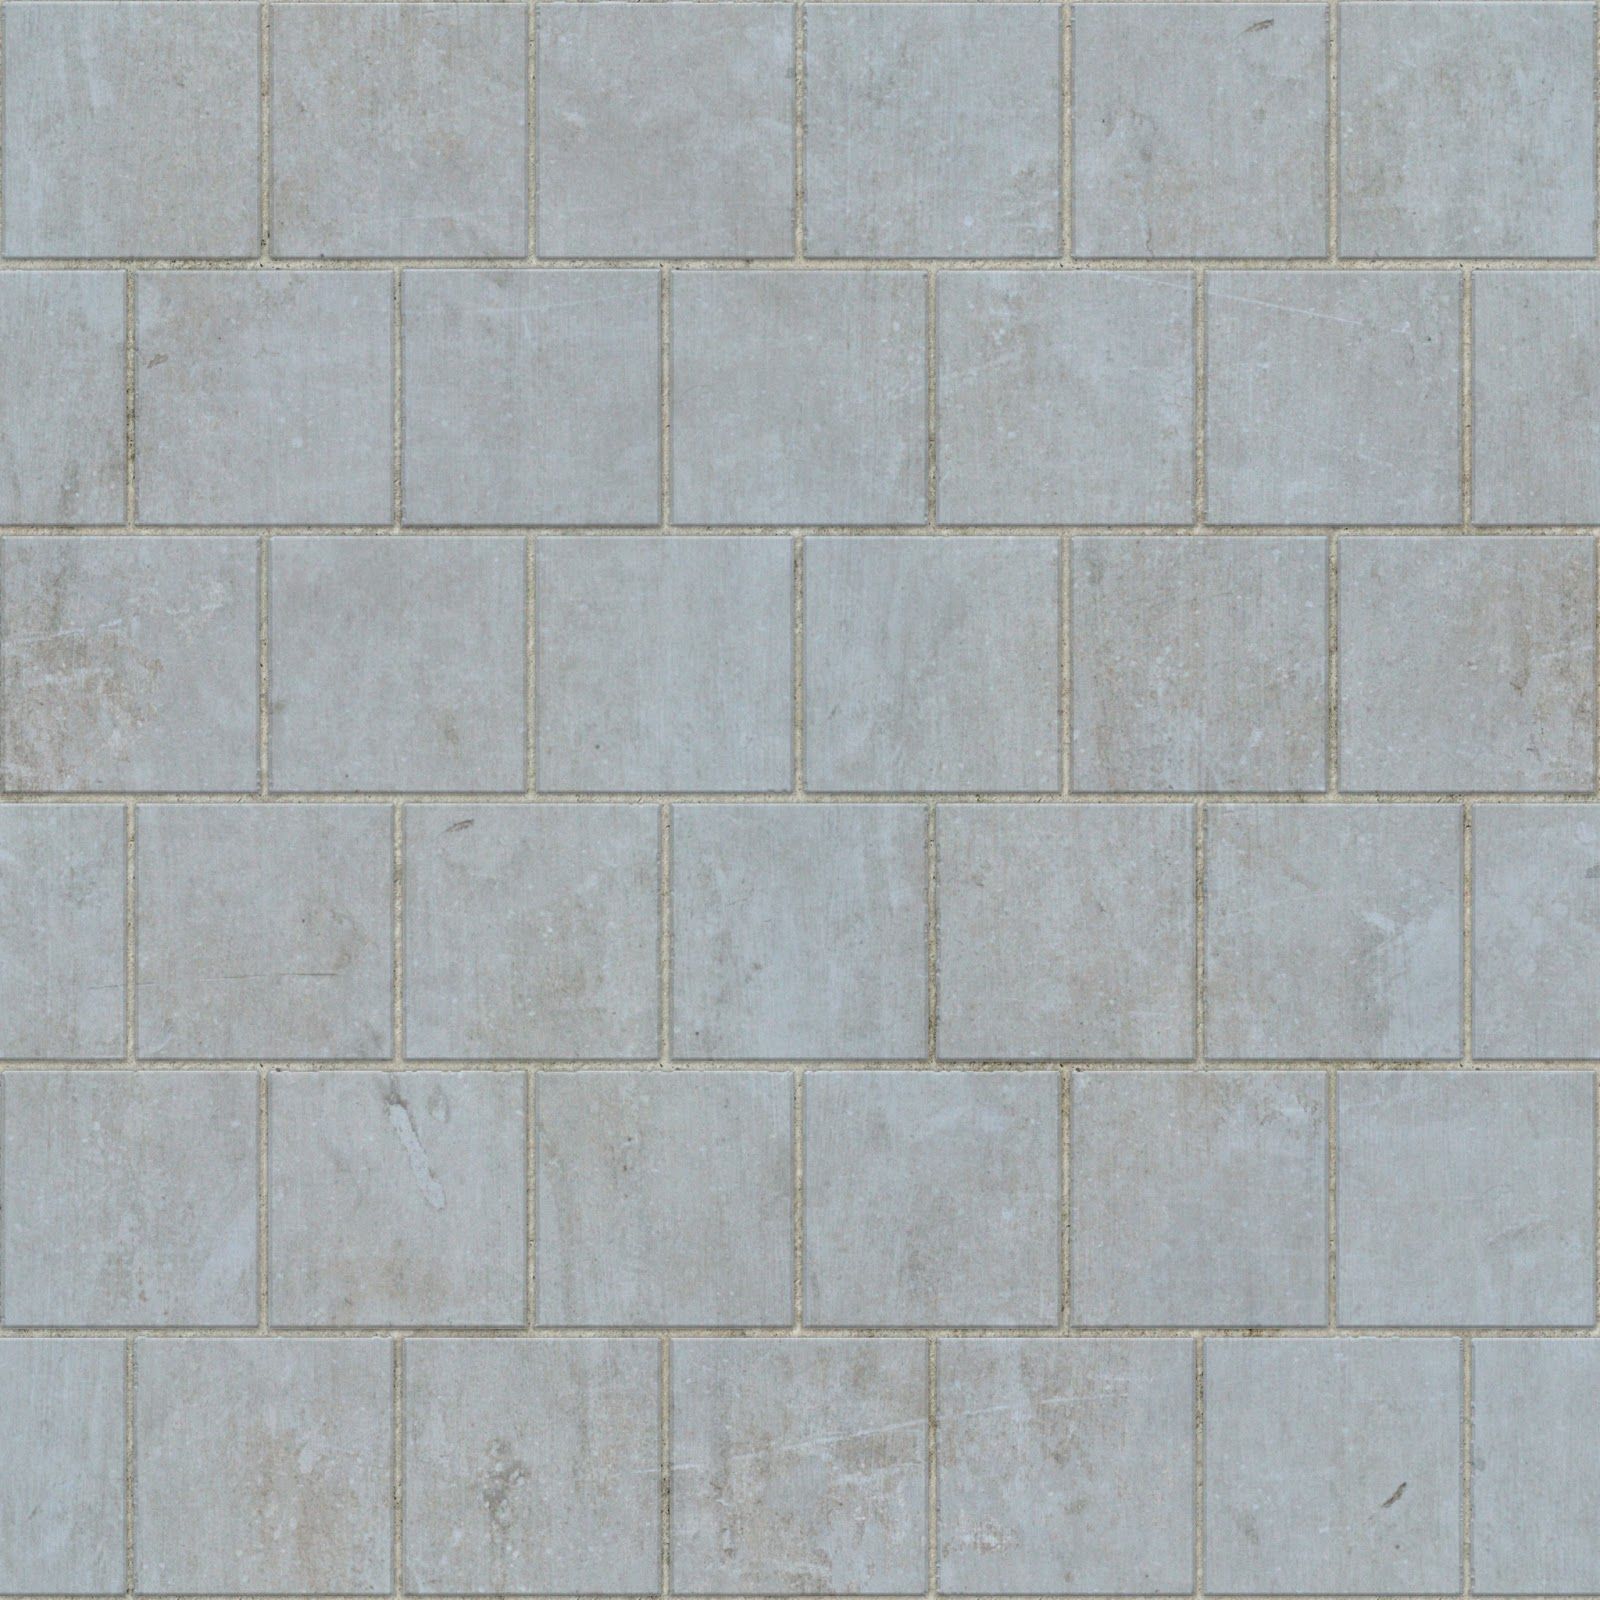 High Resolution Seamless Textures Brick Tiles Concrete